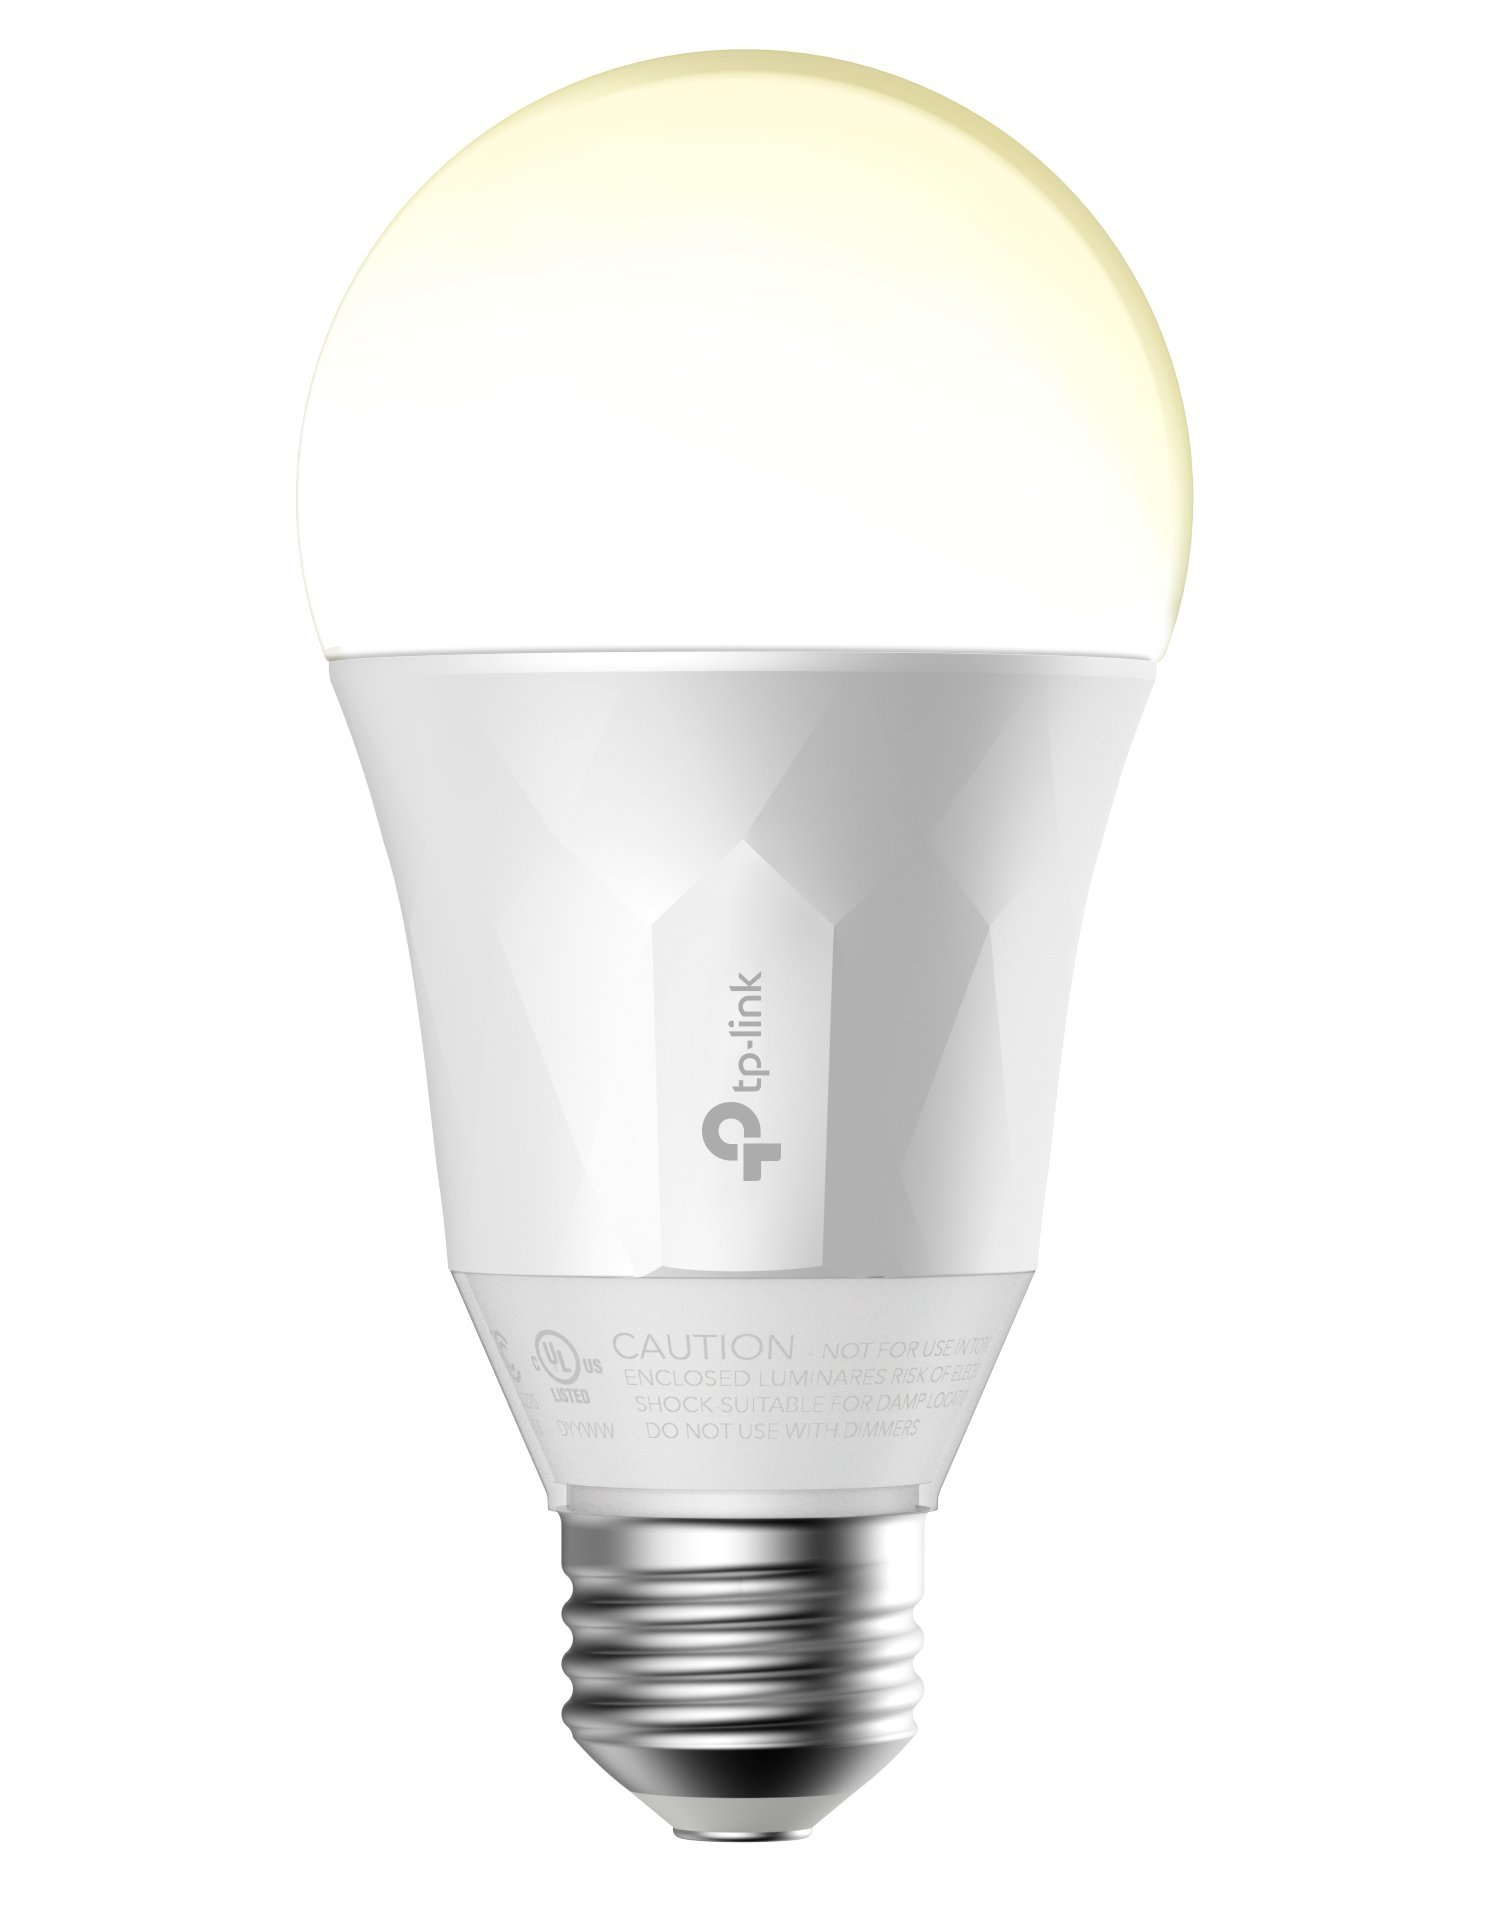 Kasa Smart Wi-Fi LED Light Bulb by TP-Link - Soft White, Dimmable, A19, No Hub Required, Works with Alexa and Google Assistant (LB100) by TP-Link (Image #3)